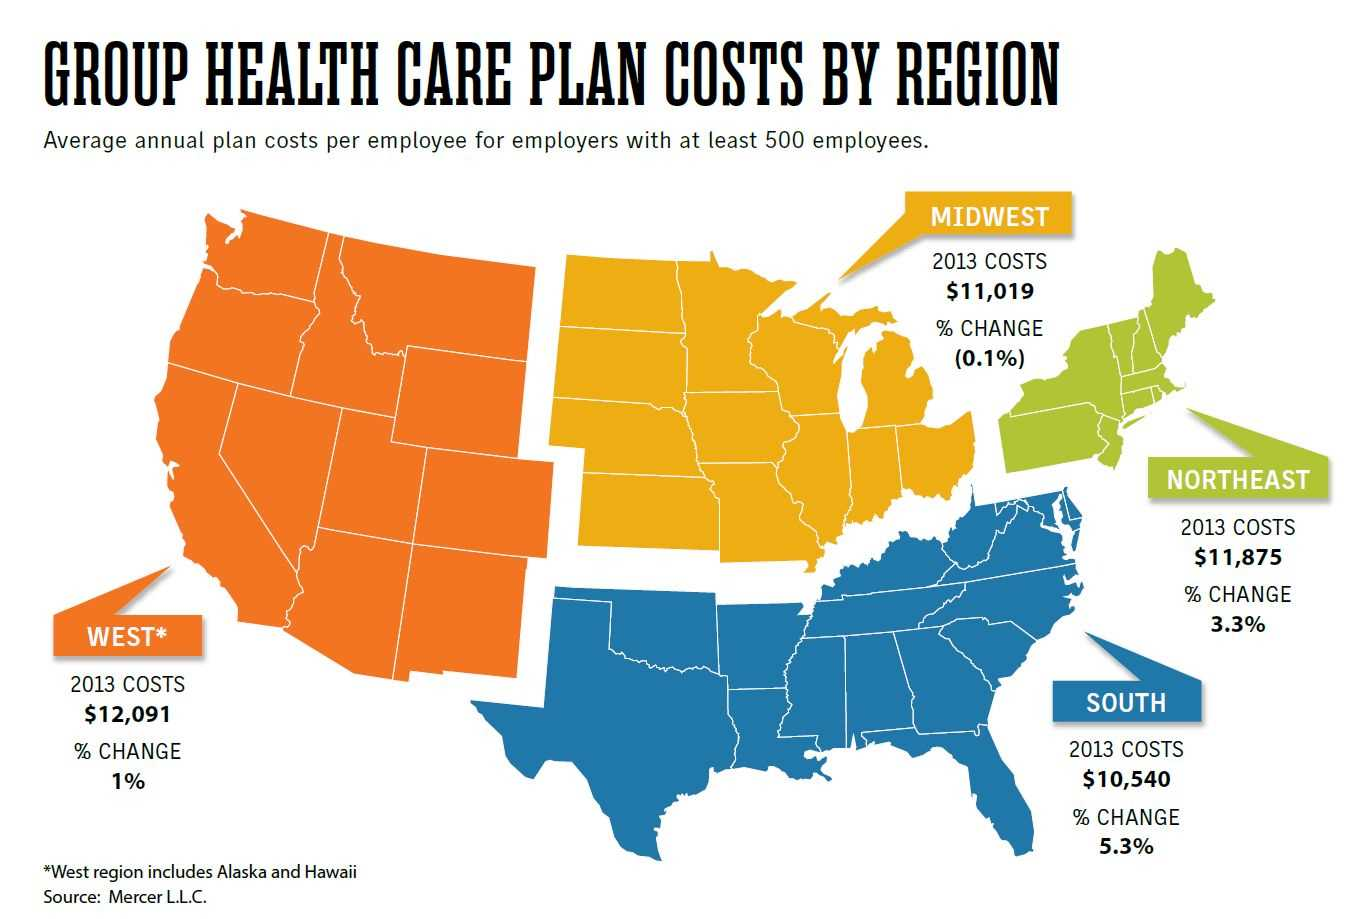 2013 group health care costs rose by lowest rate since 1997: Mercer